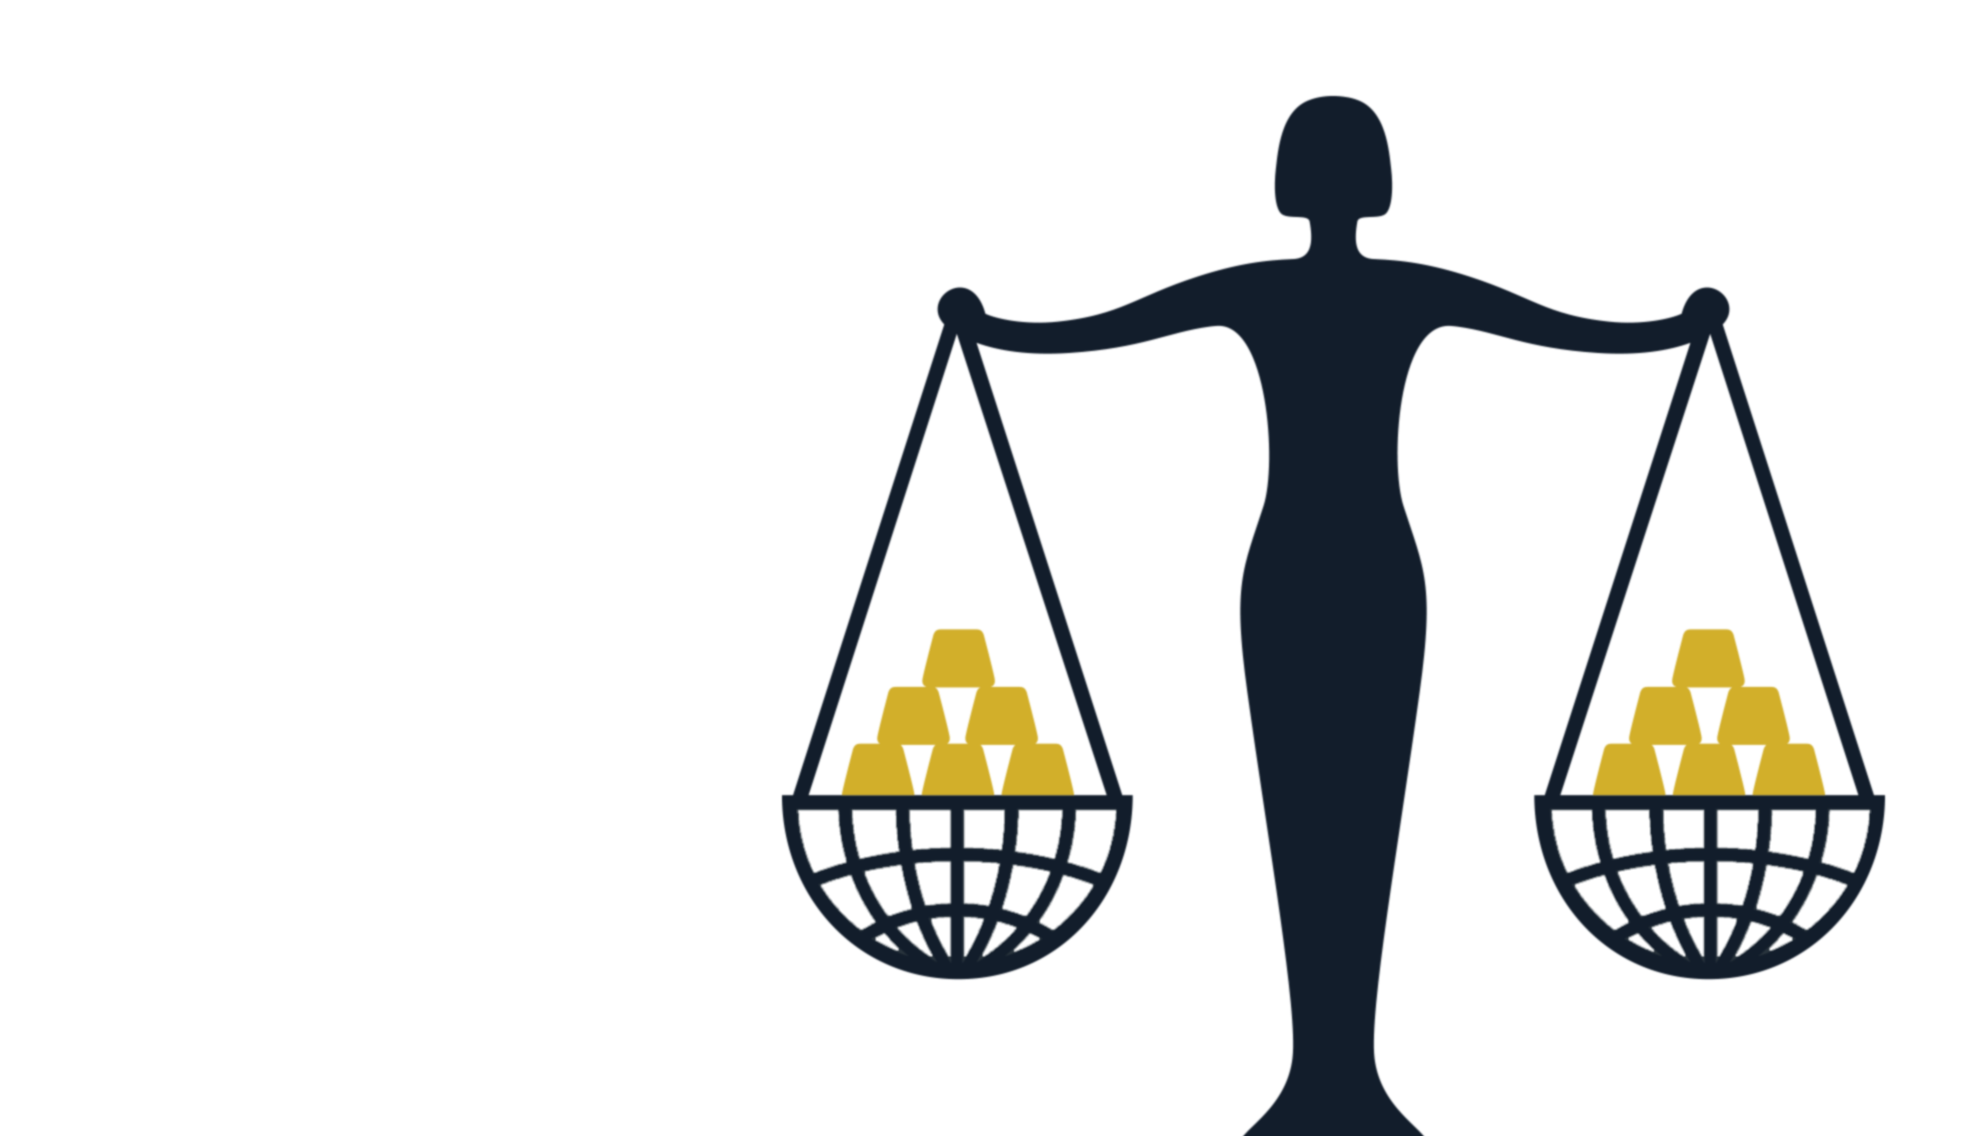 clipart freeuse download Income inequality the economist. Loss clipart economic crisis.